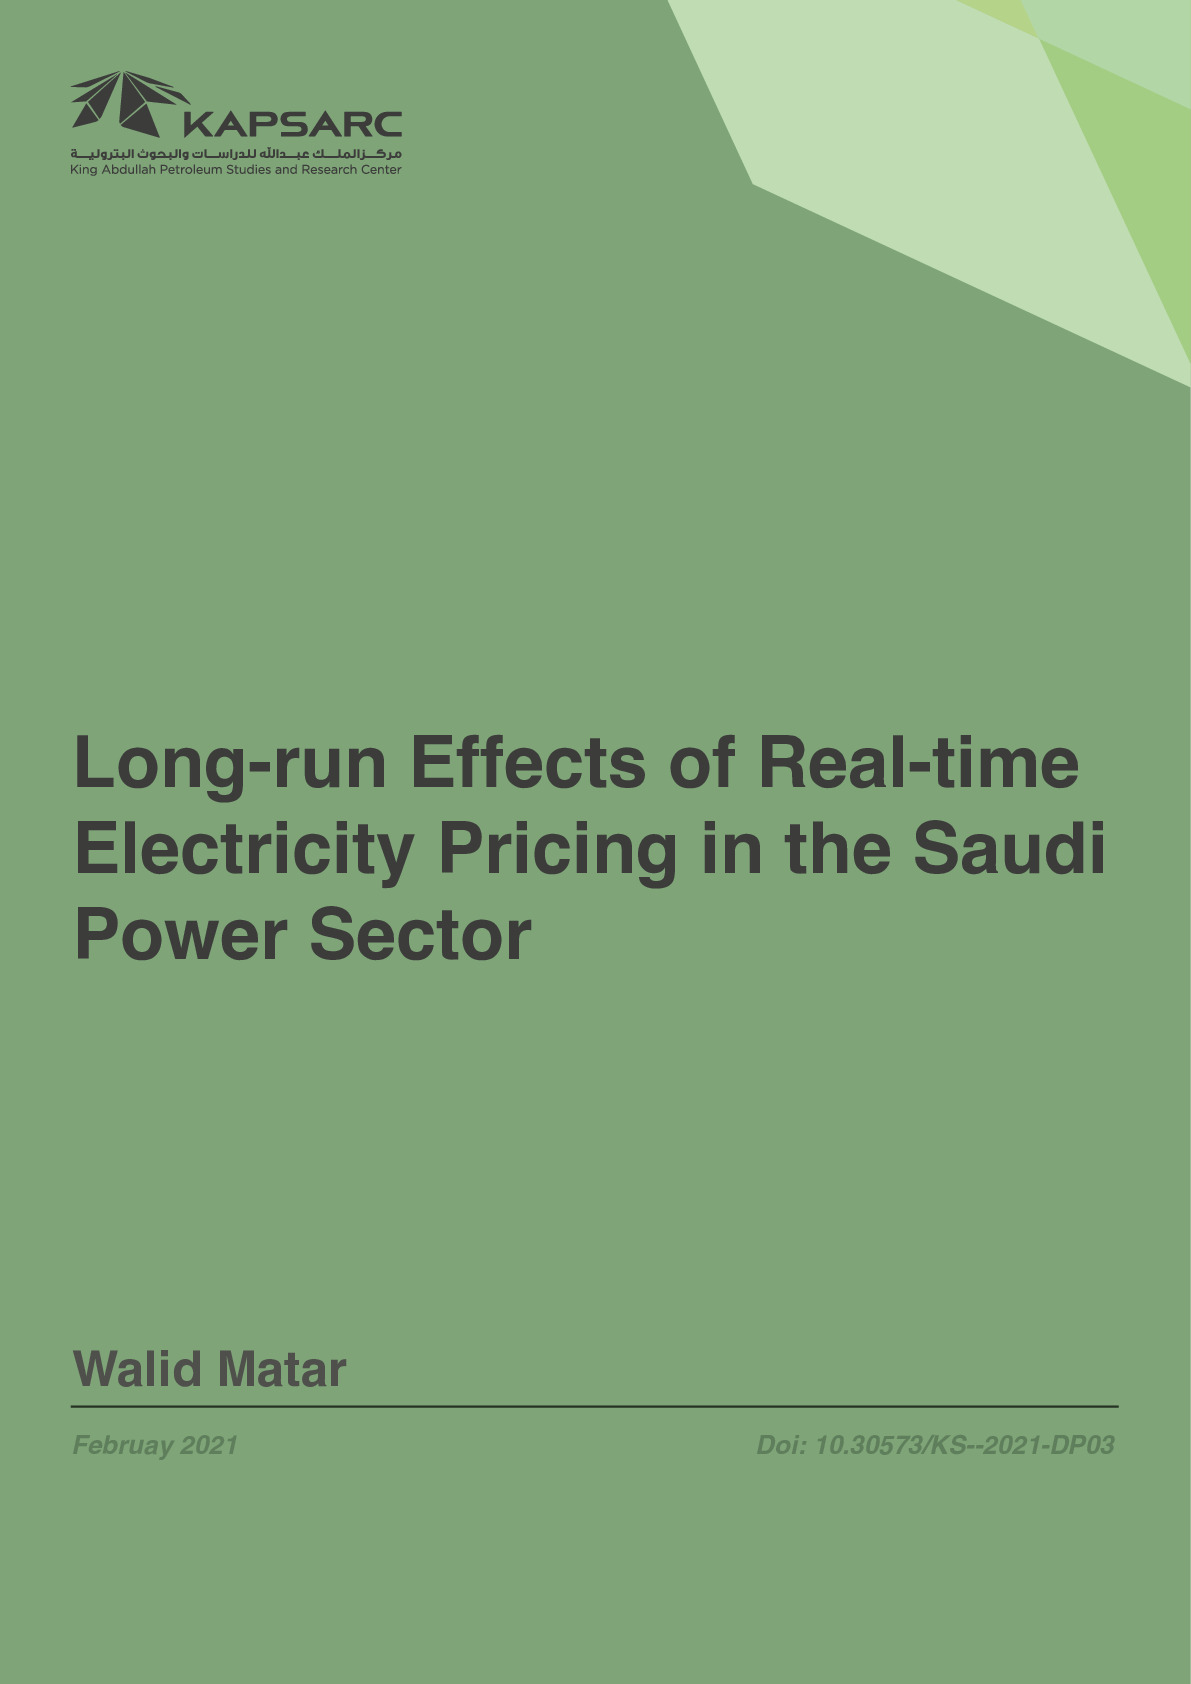 Long-run Effects of Real-time Electricity Pricing in the Saudi Power Sector